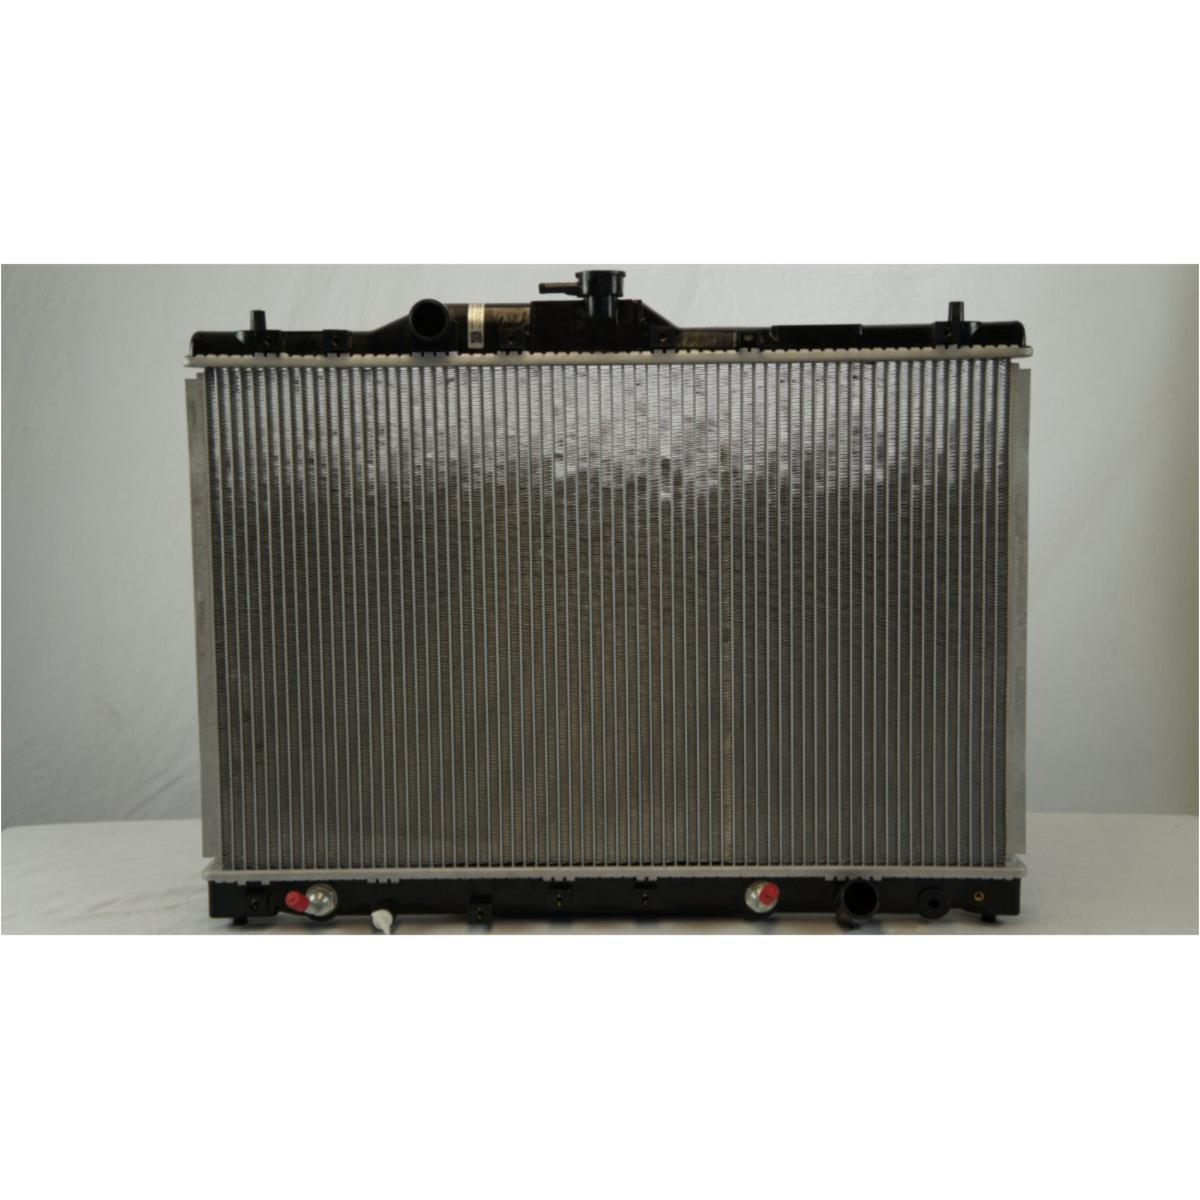 AT Aluminum/Plastic Radiator 1 Row For 1991-1995 Acura